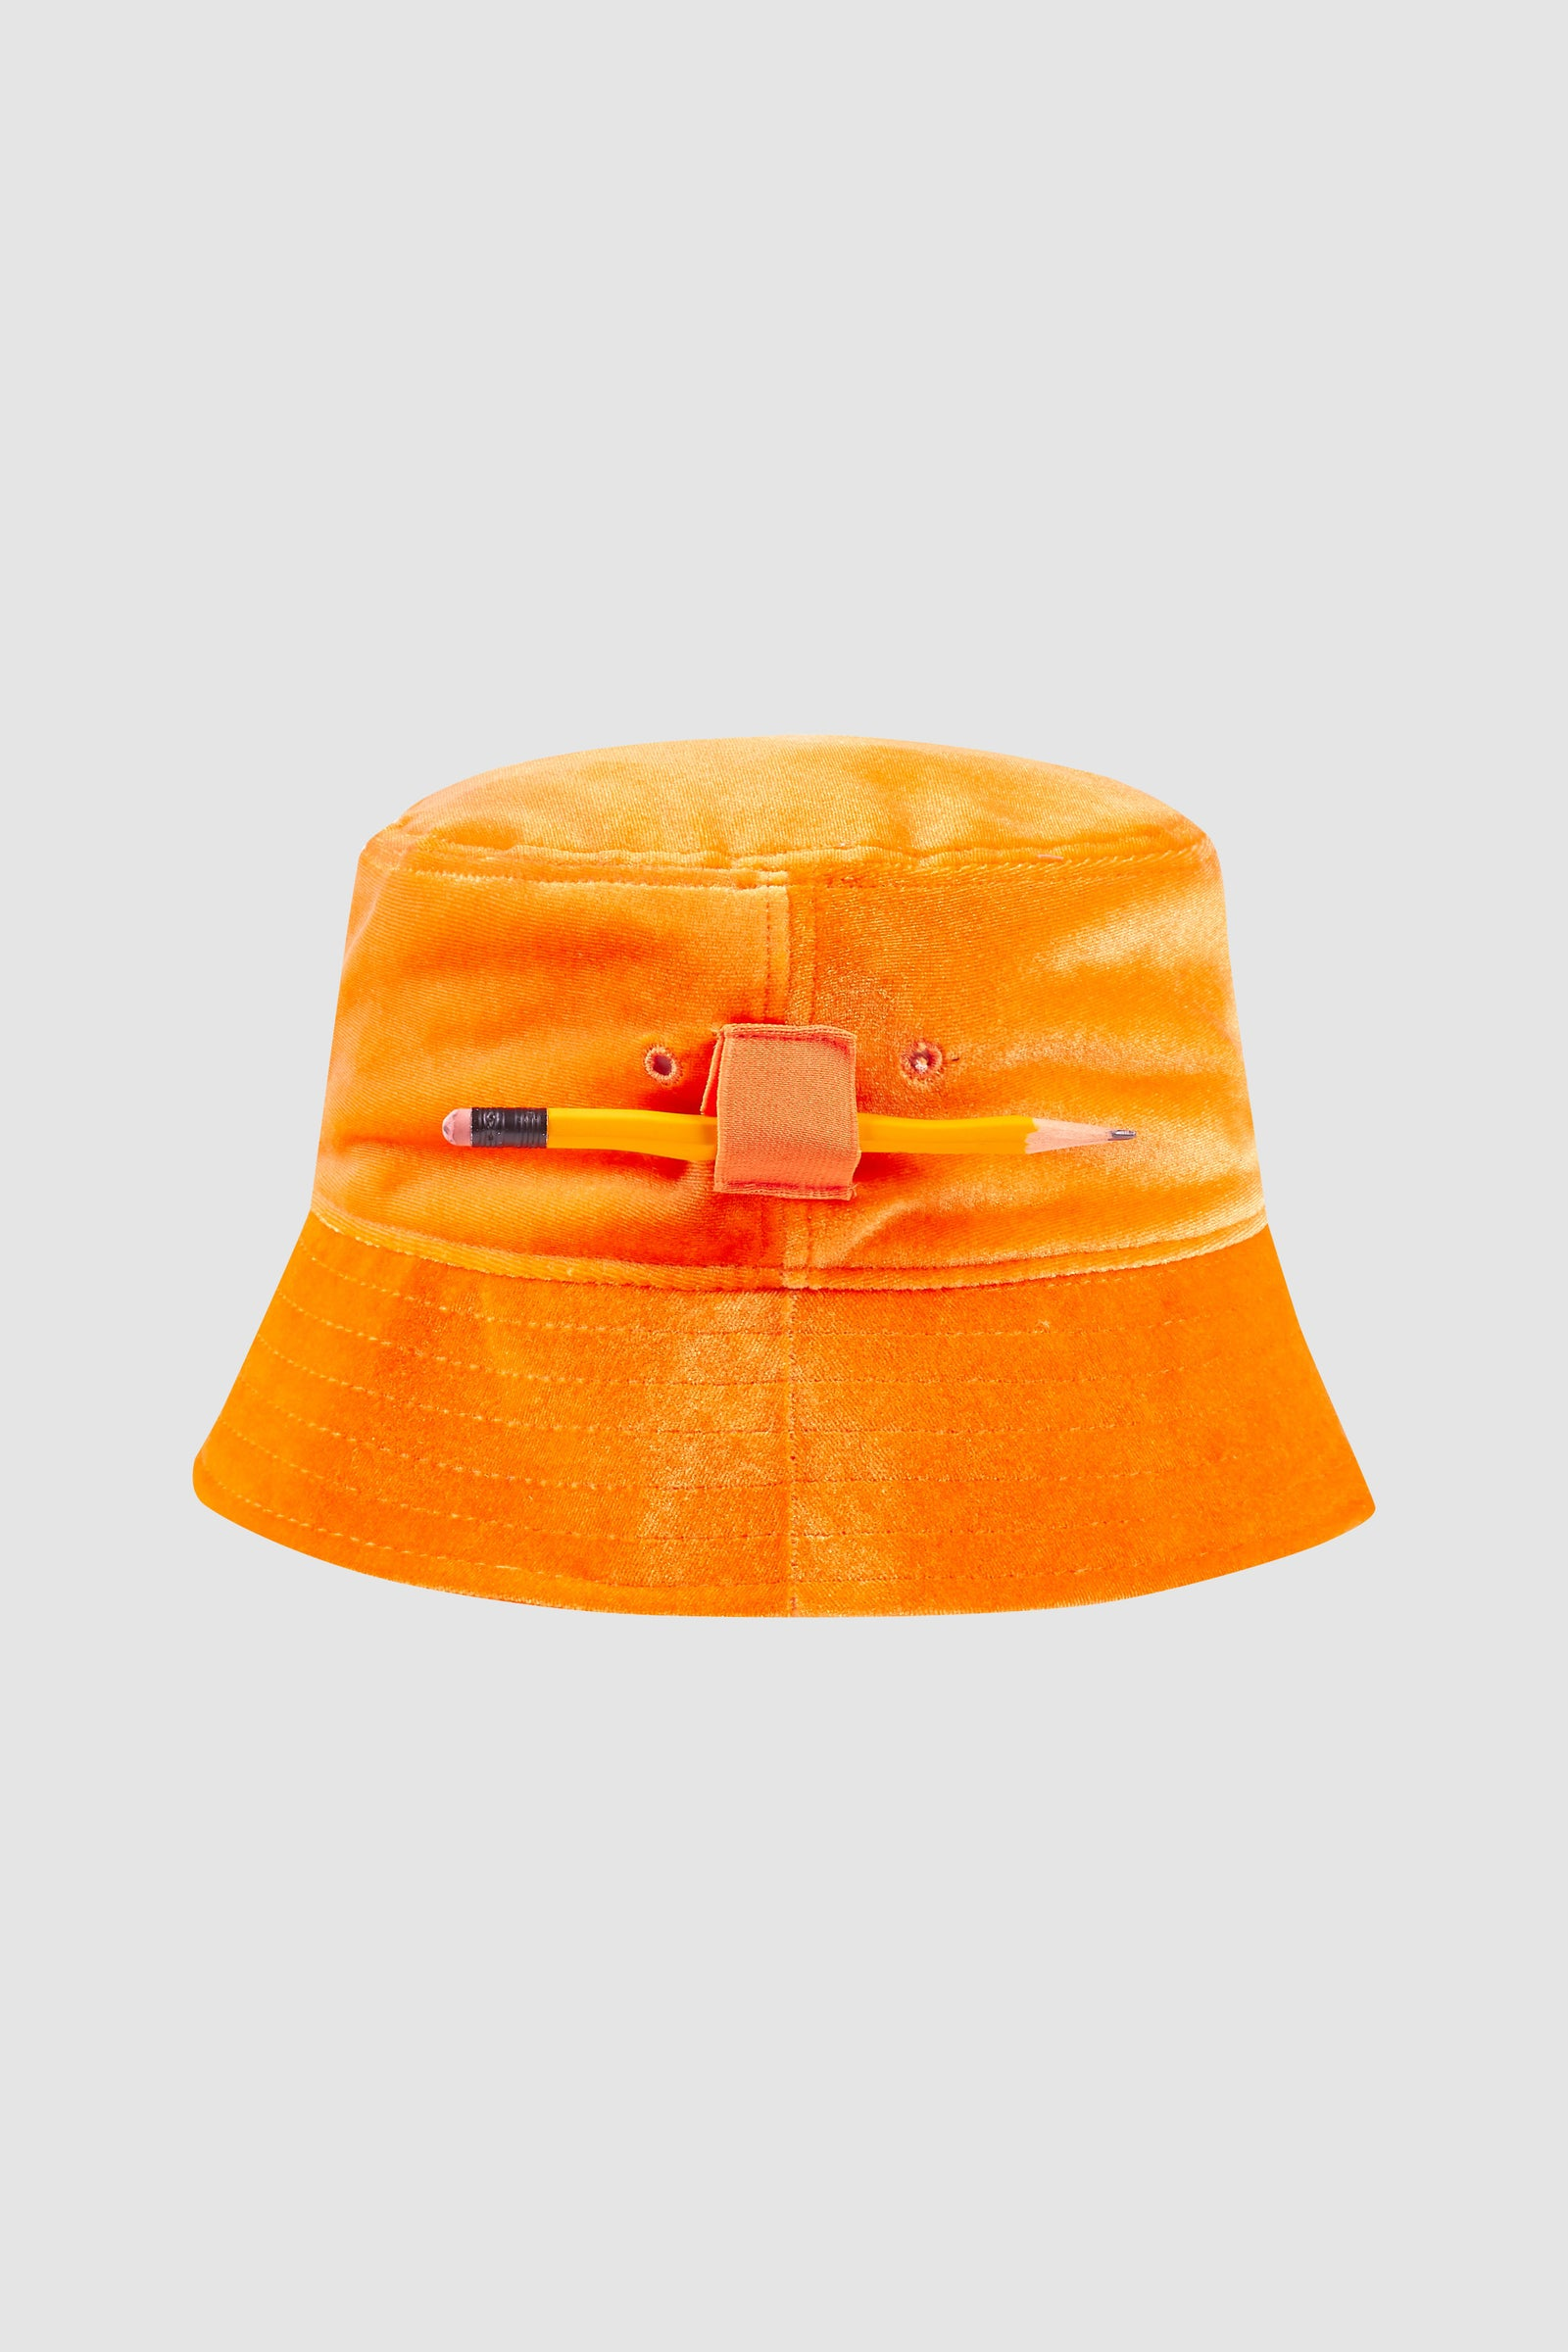 Orange Velvet Smoking Bucket Hat